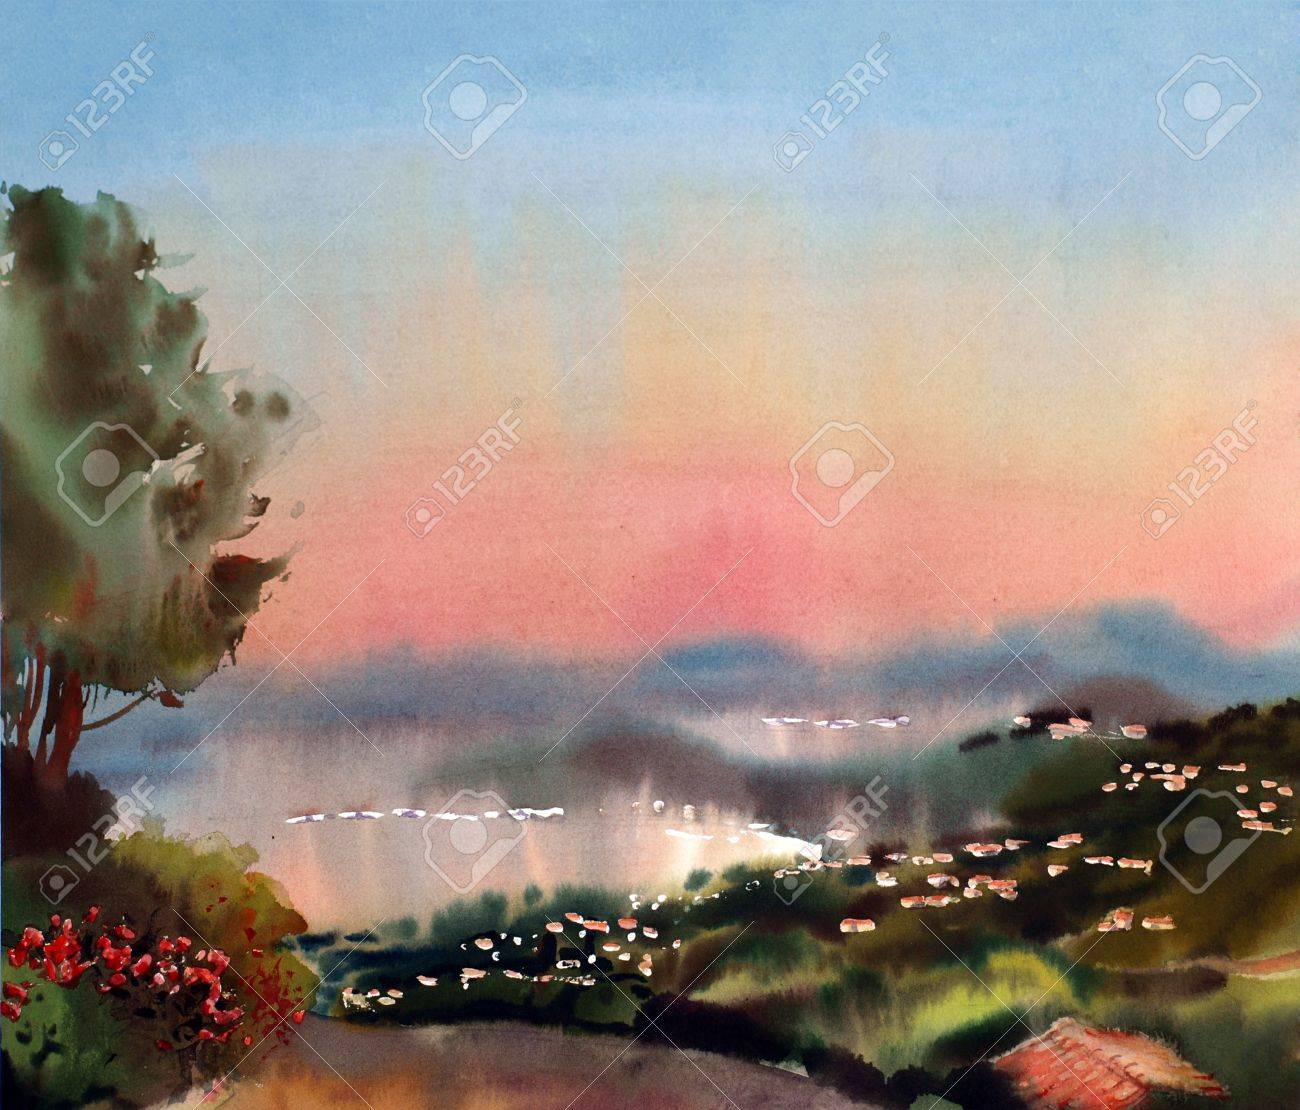 Watercolor Painting Landscape Of Sunset In The Cote DAzur France Stock Photo